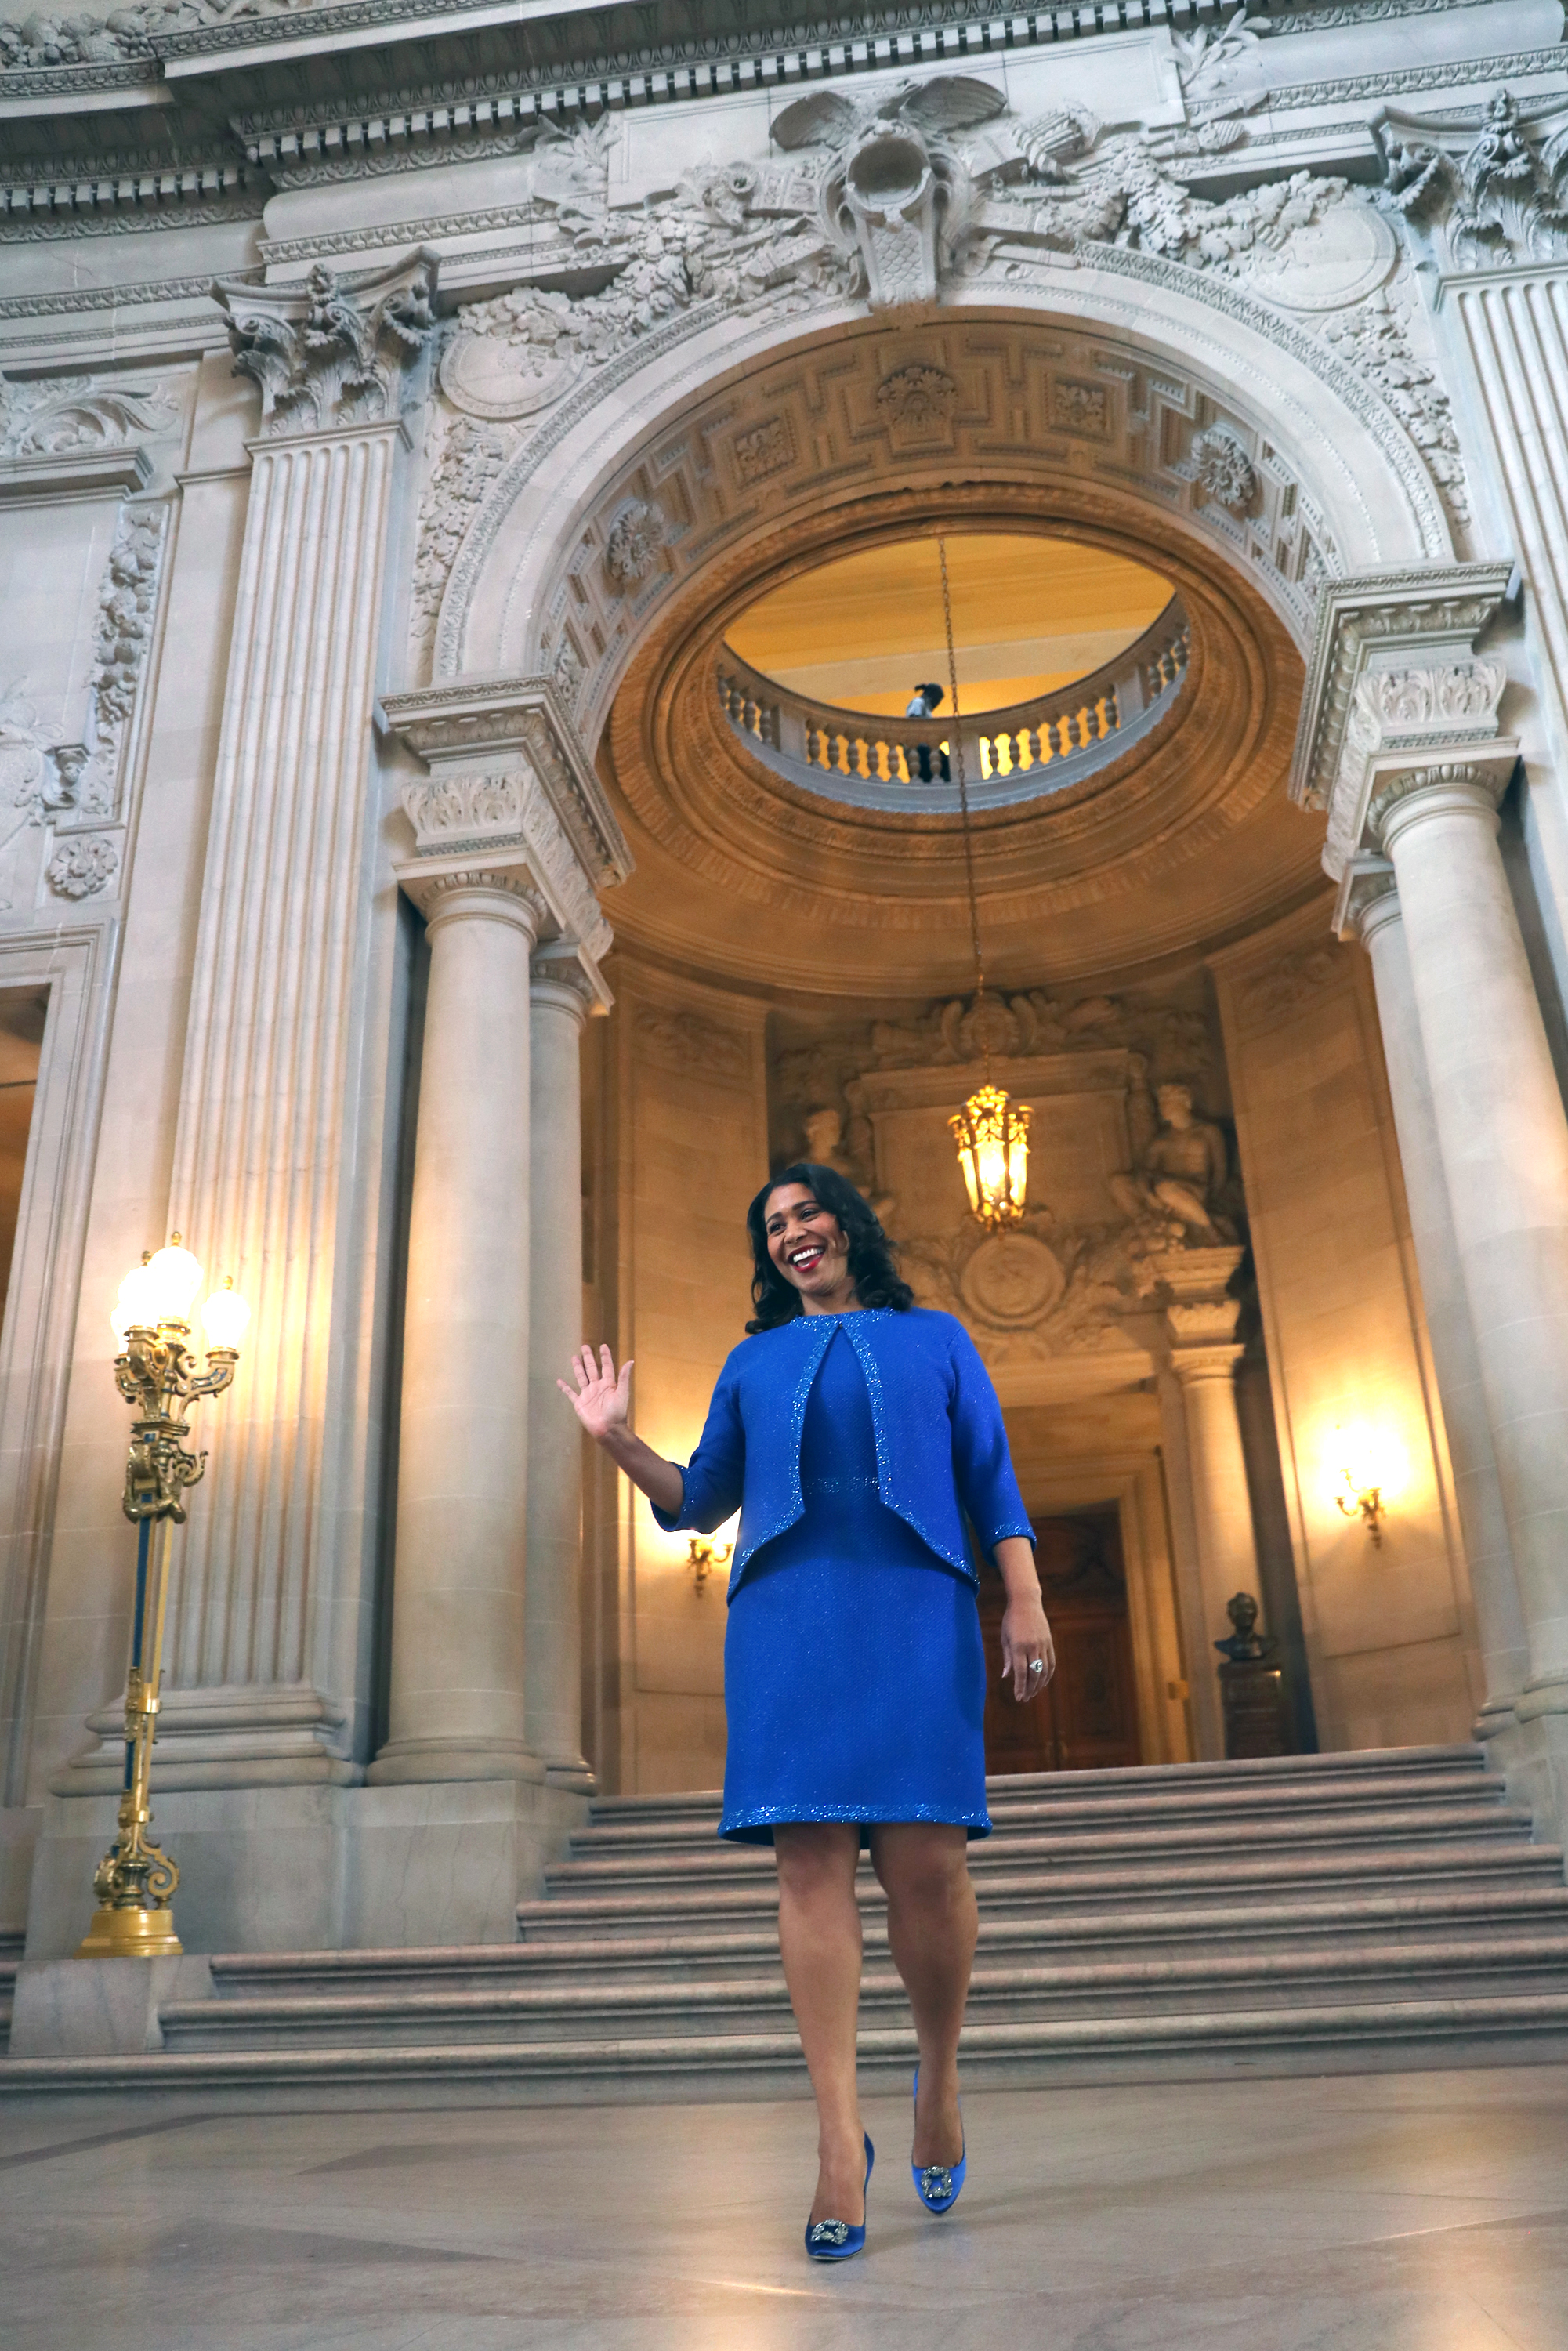 <div class='meta'><div class='origin-logo' data-origin='none'></div><span class='caption-text' data-credit='The Chronicle'>San Francisco Mayor London Breed walks down the City Hall staircase on her way to her inauguration in San Francisco, Calif. on Wednesday, July 11, 2018.</span></div>